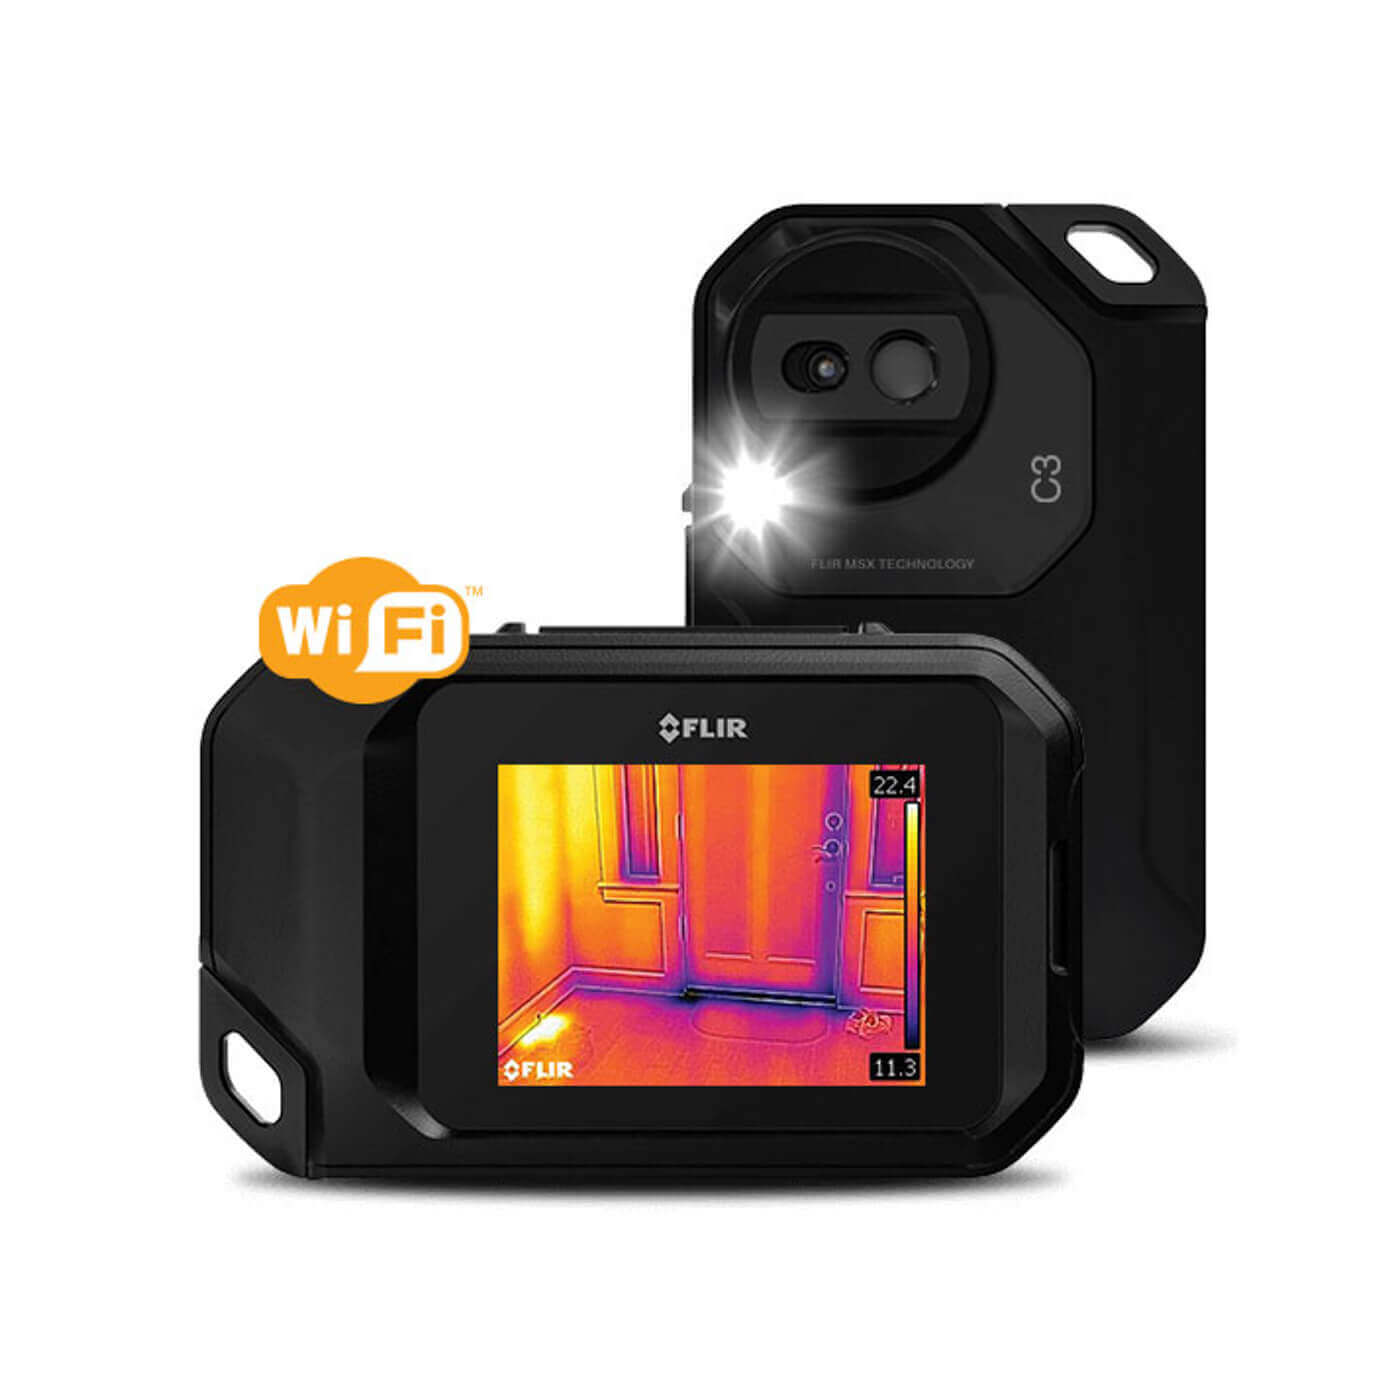 FLIR C3 Pocket Thermal Camera